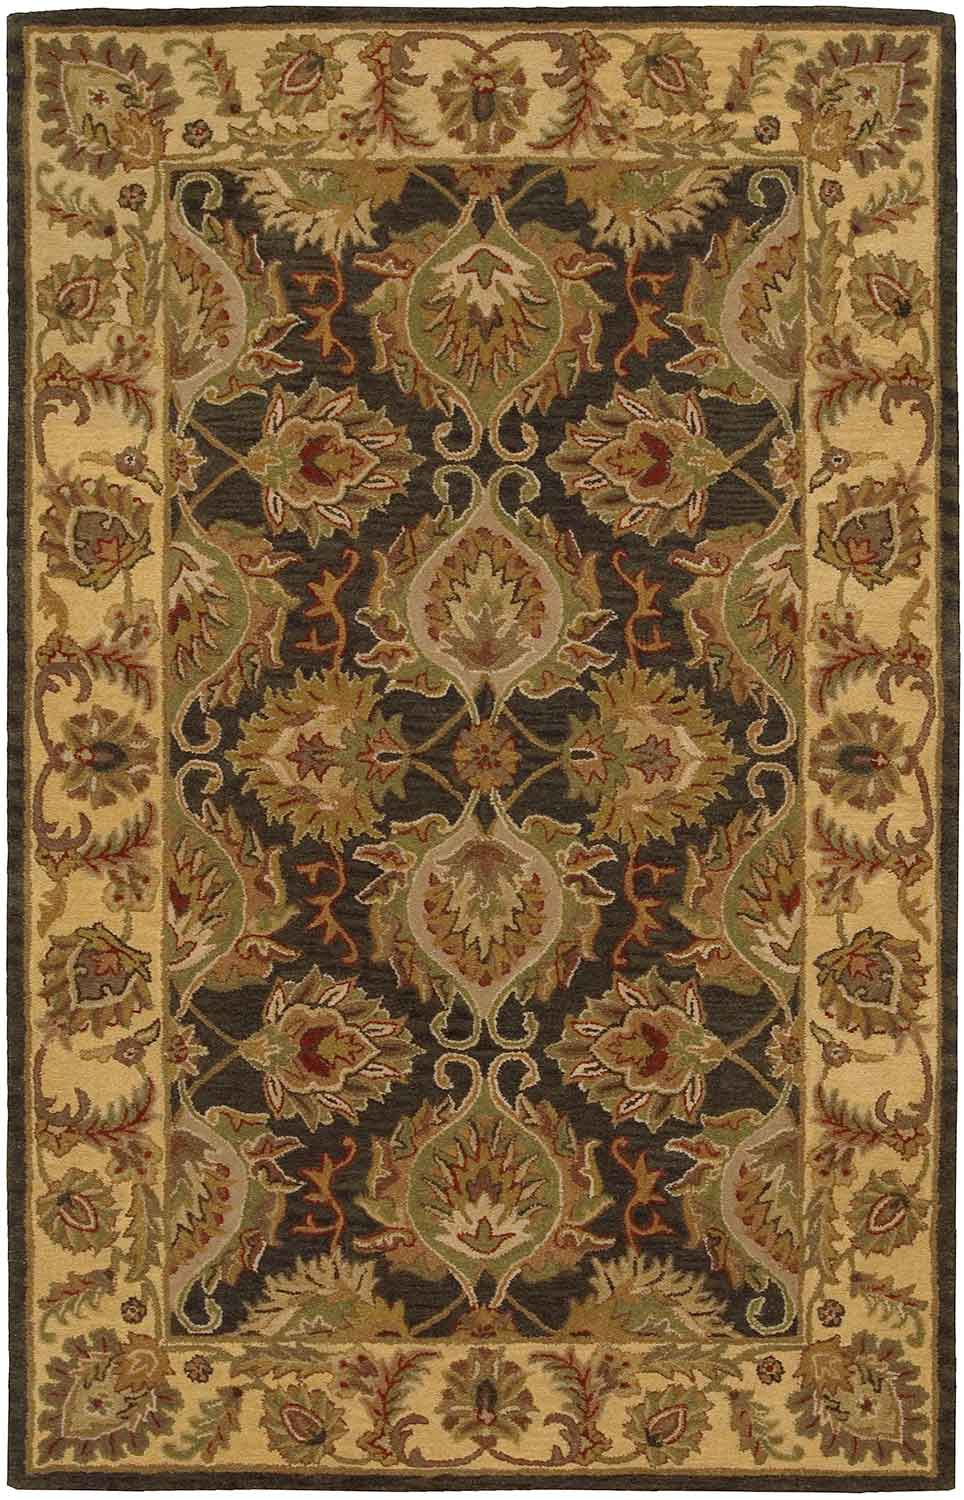 Nourison India House IH59 Green Area Rug INDIA-HOUSE-IH59-GREEN